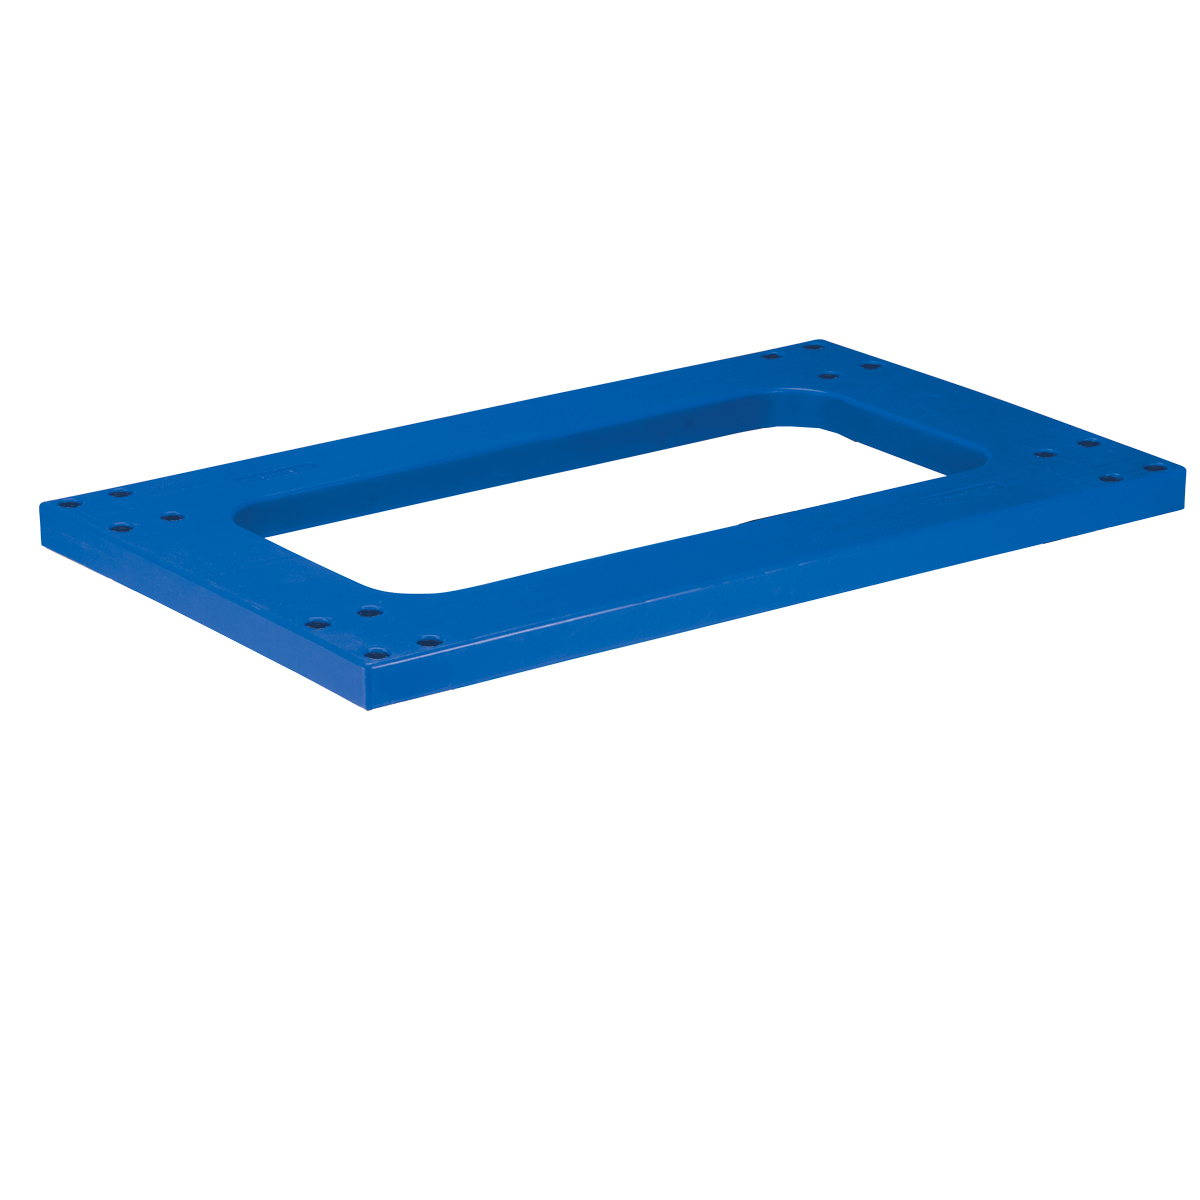 Item DISCONTINUED by Manufacturer.  Flush Polyethylene, Without Casters 30x18, Blue.  This item sold in carton quantities of 1.